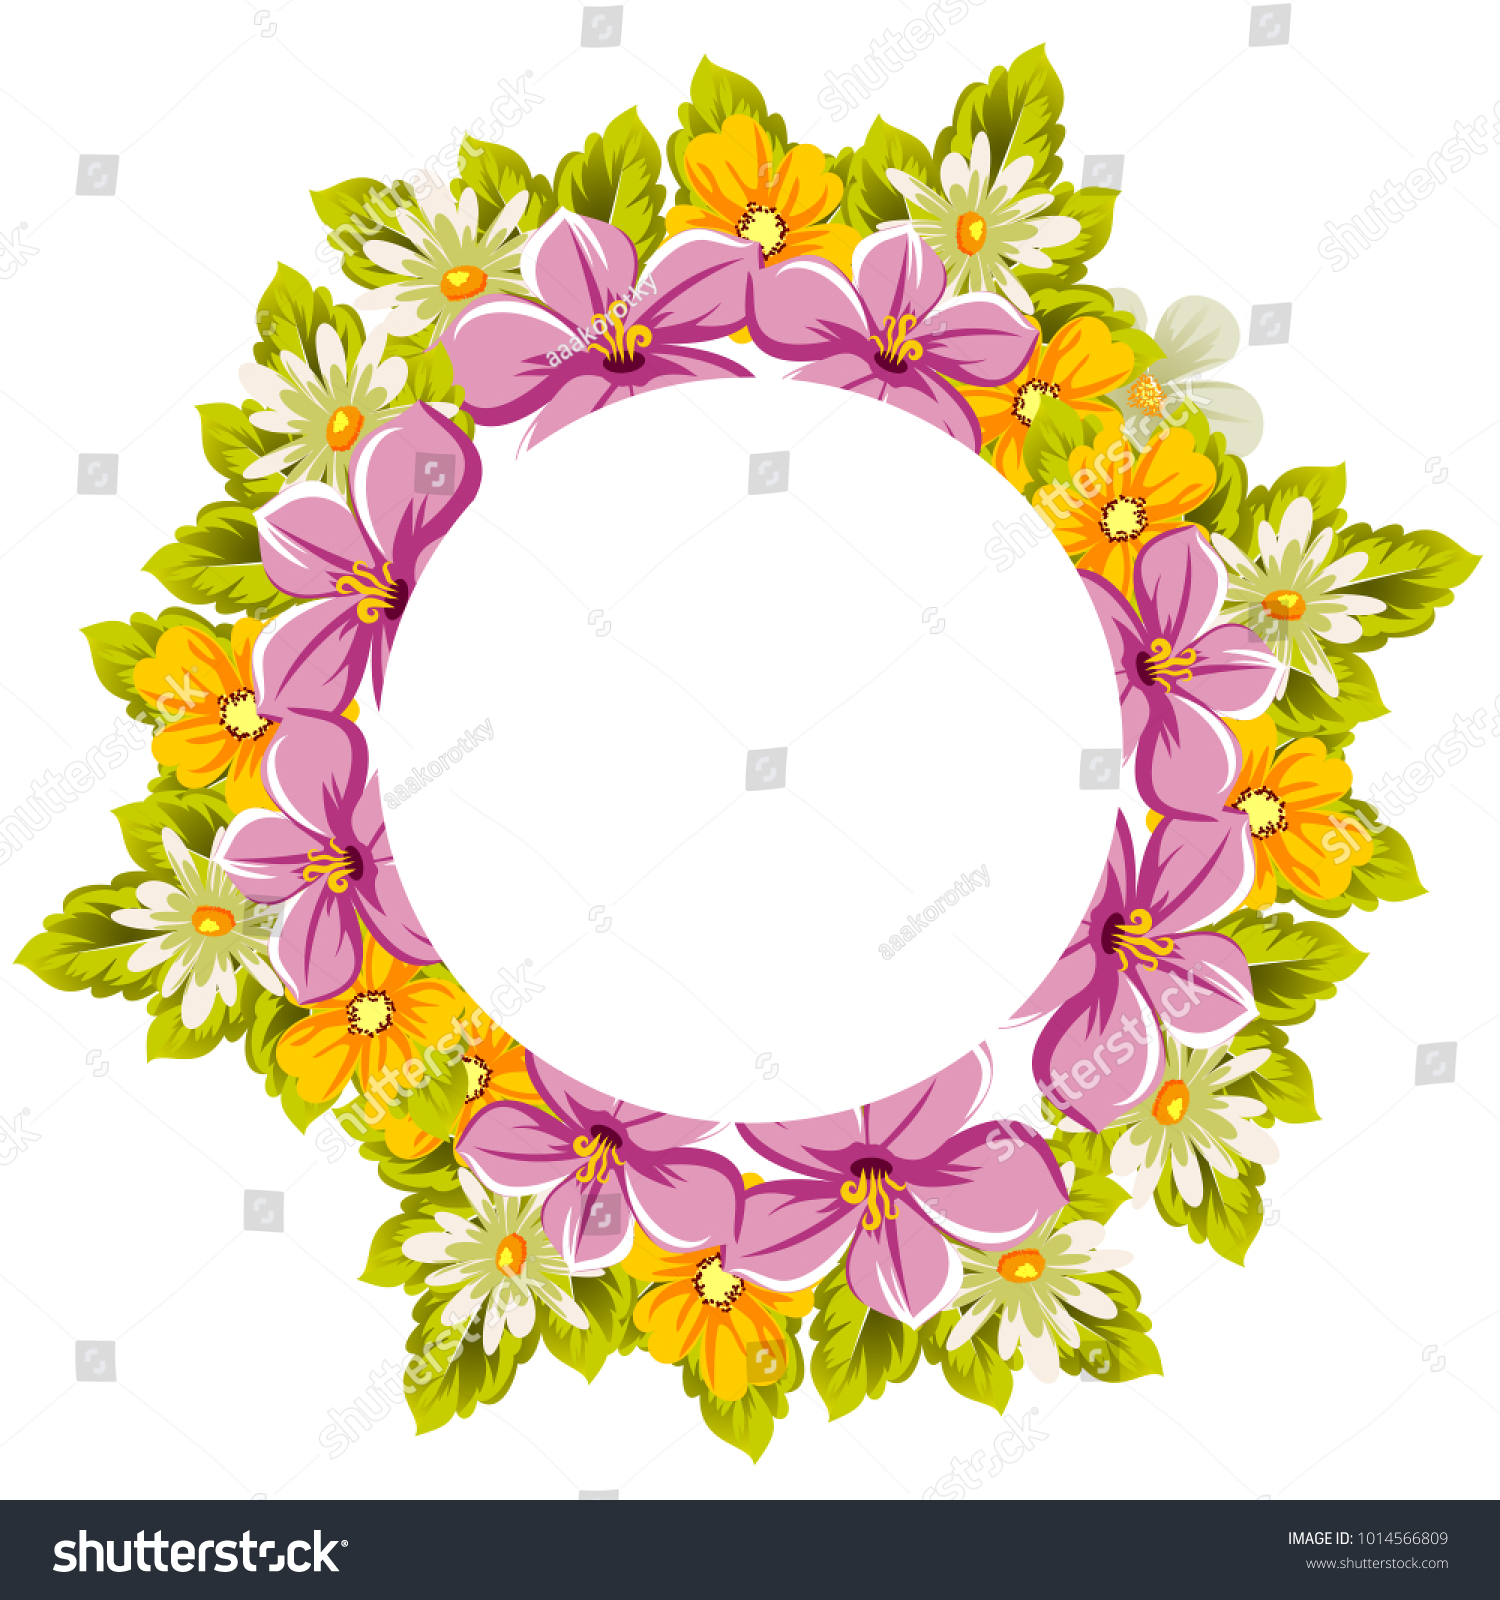 Beautiful Frames Your Text Flowers Design Stock Vector 1014566809 ...